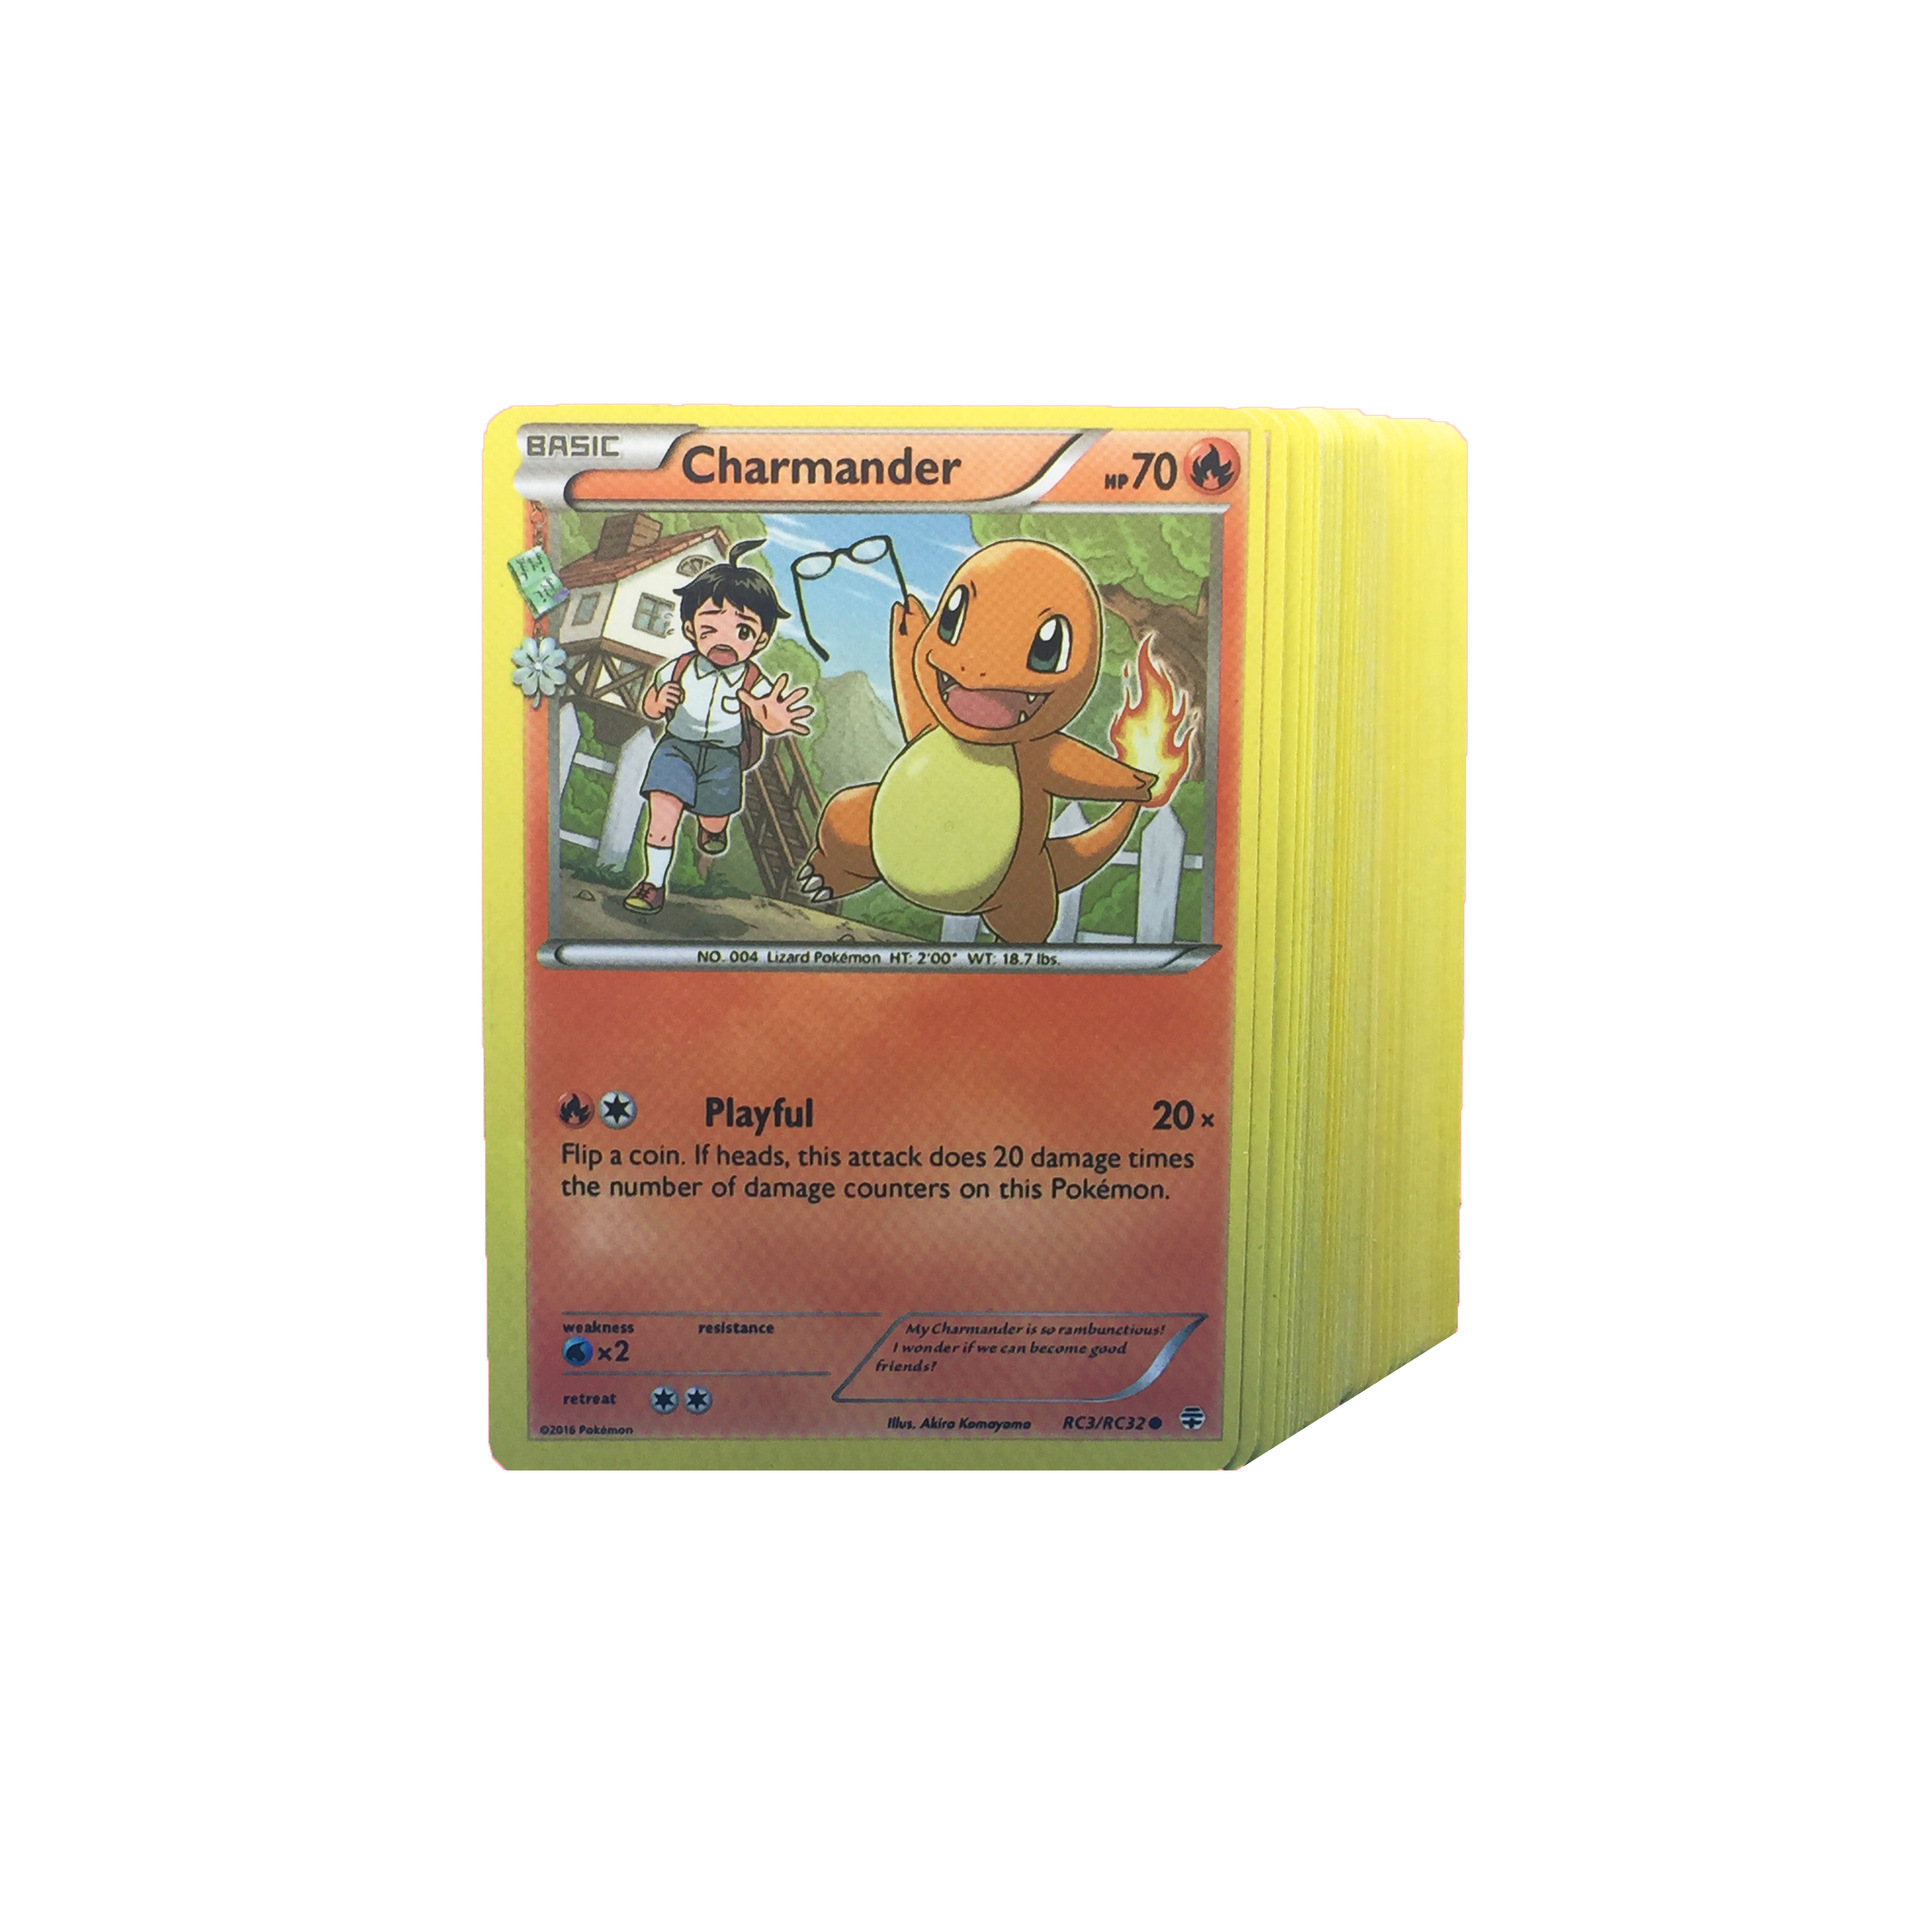 TAKARA TOMY 100pcs/set No Repeat Pokemon Battle Toys Hobbies Hobby Collectibles Game Collection Anime Cards for Children